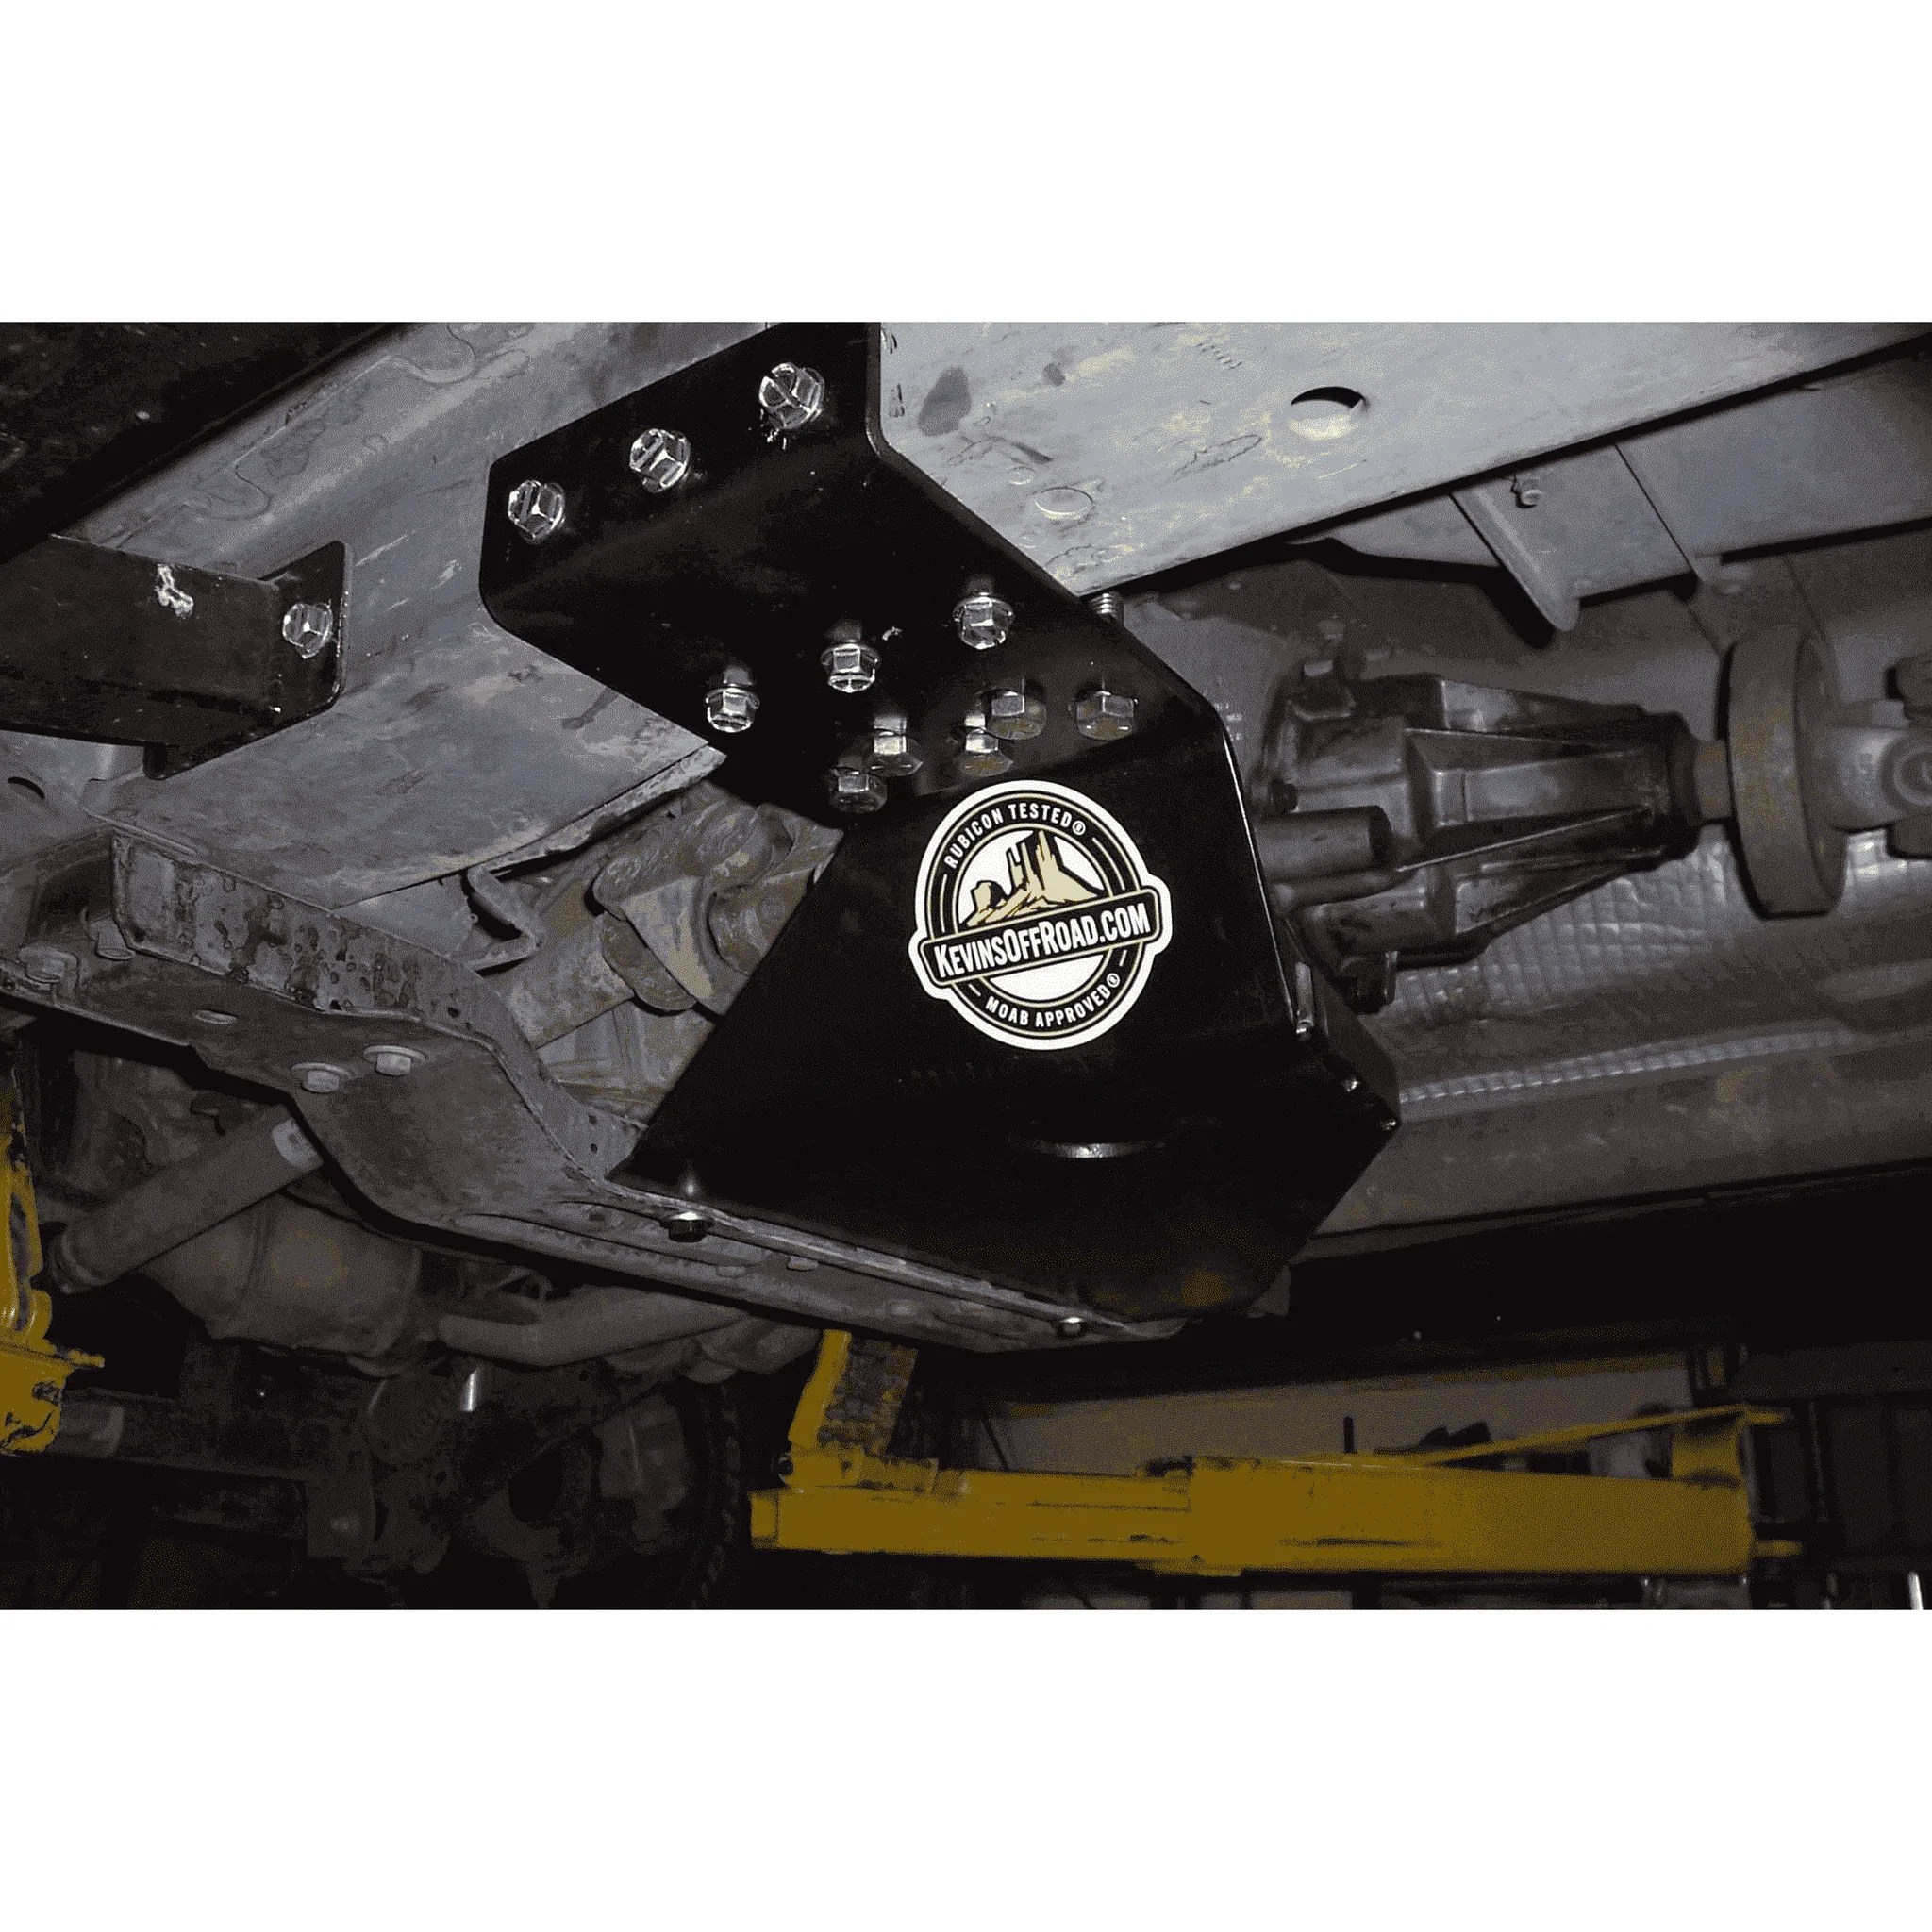 hight resolution of jeep grand cherokee wj transfer case skid plate kor 7102 kevinsoffroad com